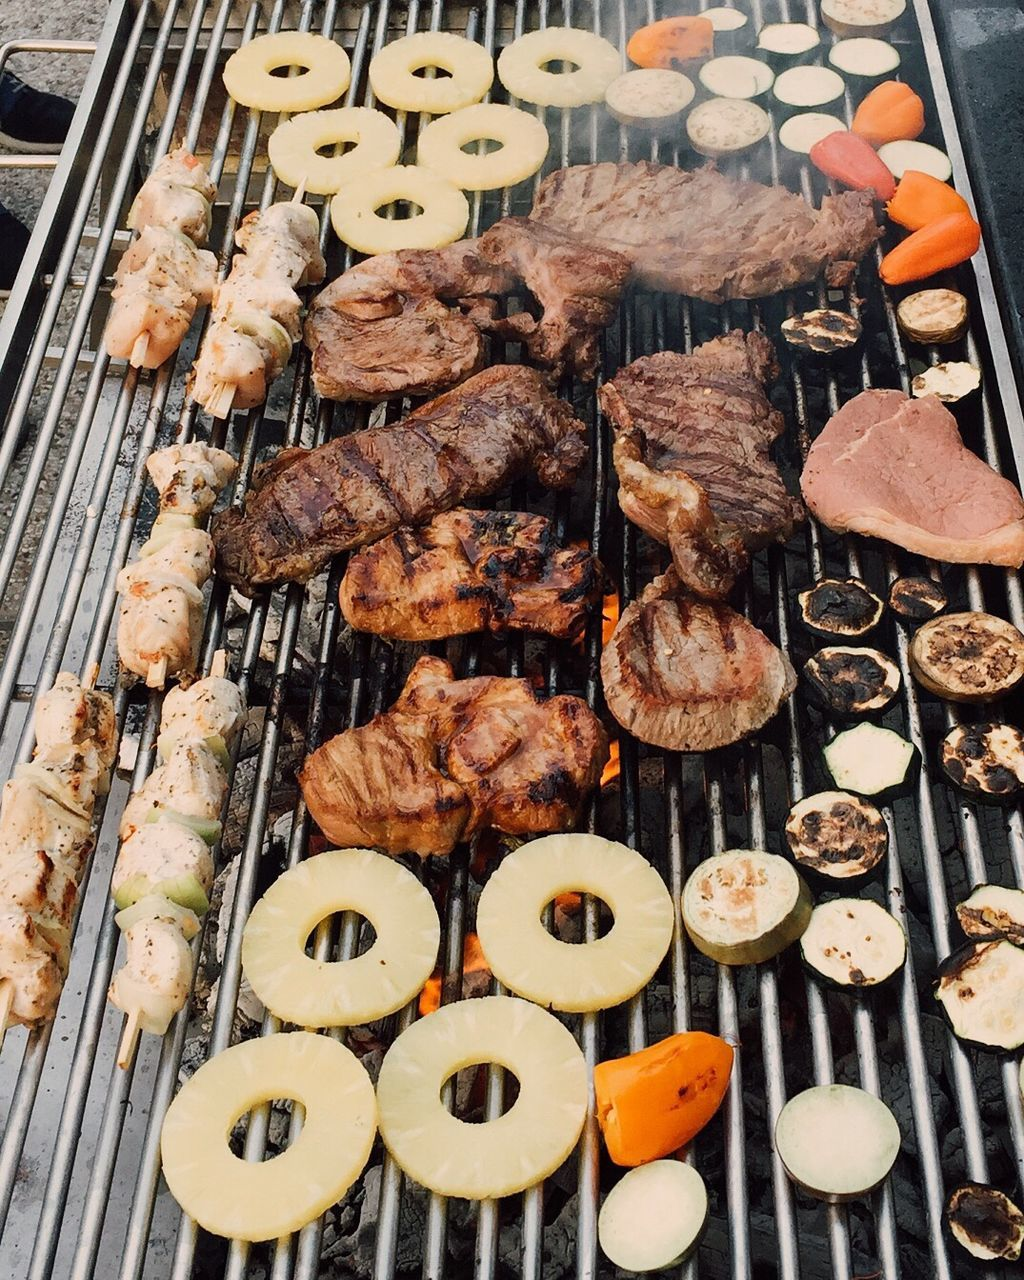 food and drink, food, barbecue, barbecue grill, grilled, skewer, meat, freshness, no people, high angle view, ready-to-eat, close-up, healthy eating, day, outdoors